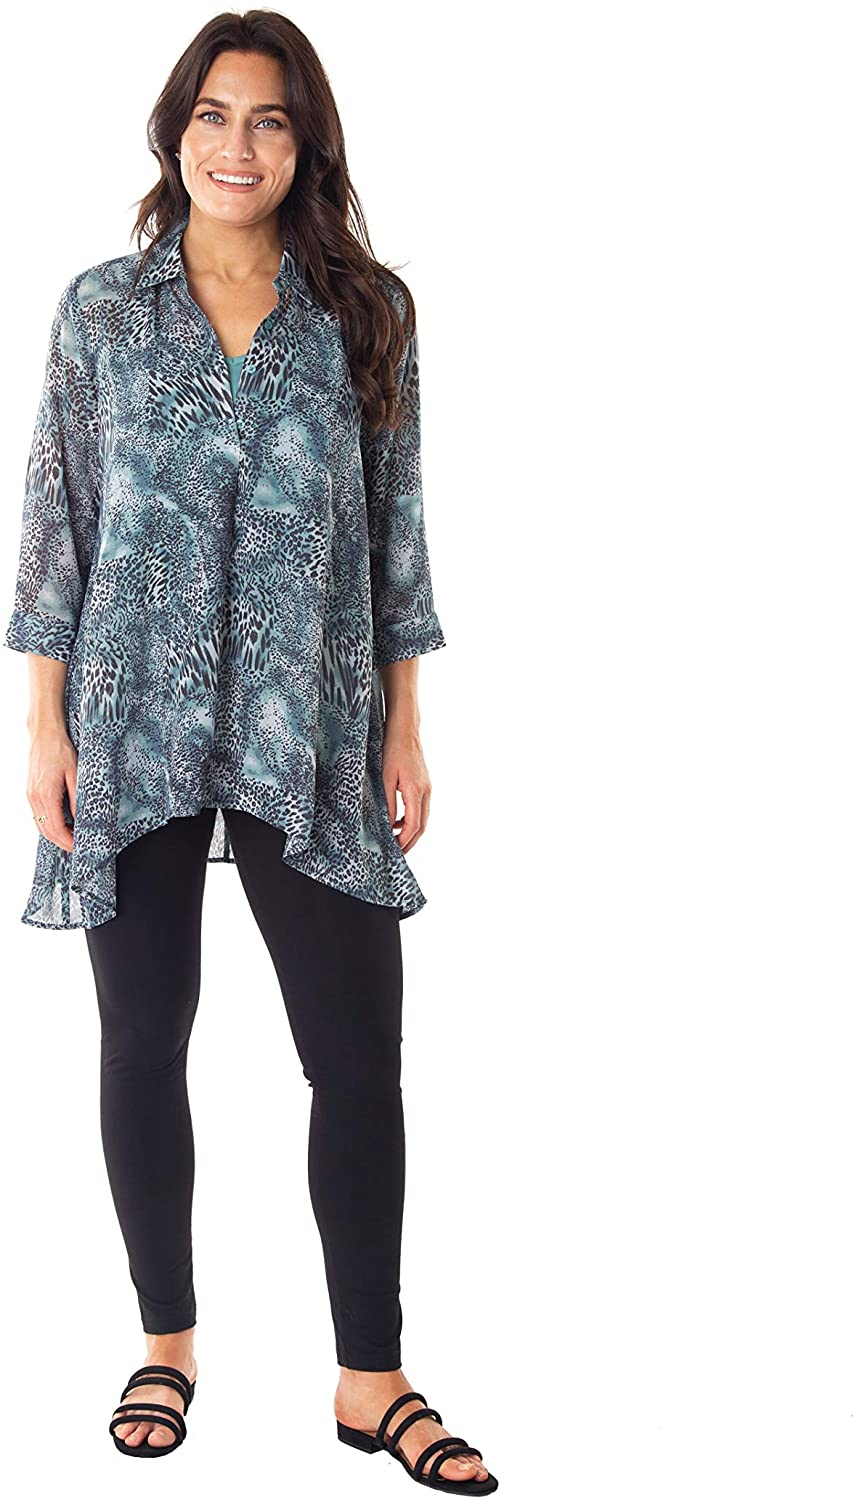 Caffe Marrakesh Womens 3/4 Sleeve Printed Georgette Top with Inner Tank Top